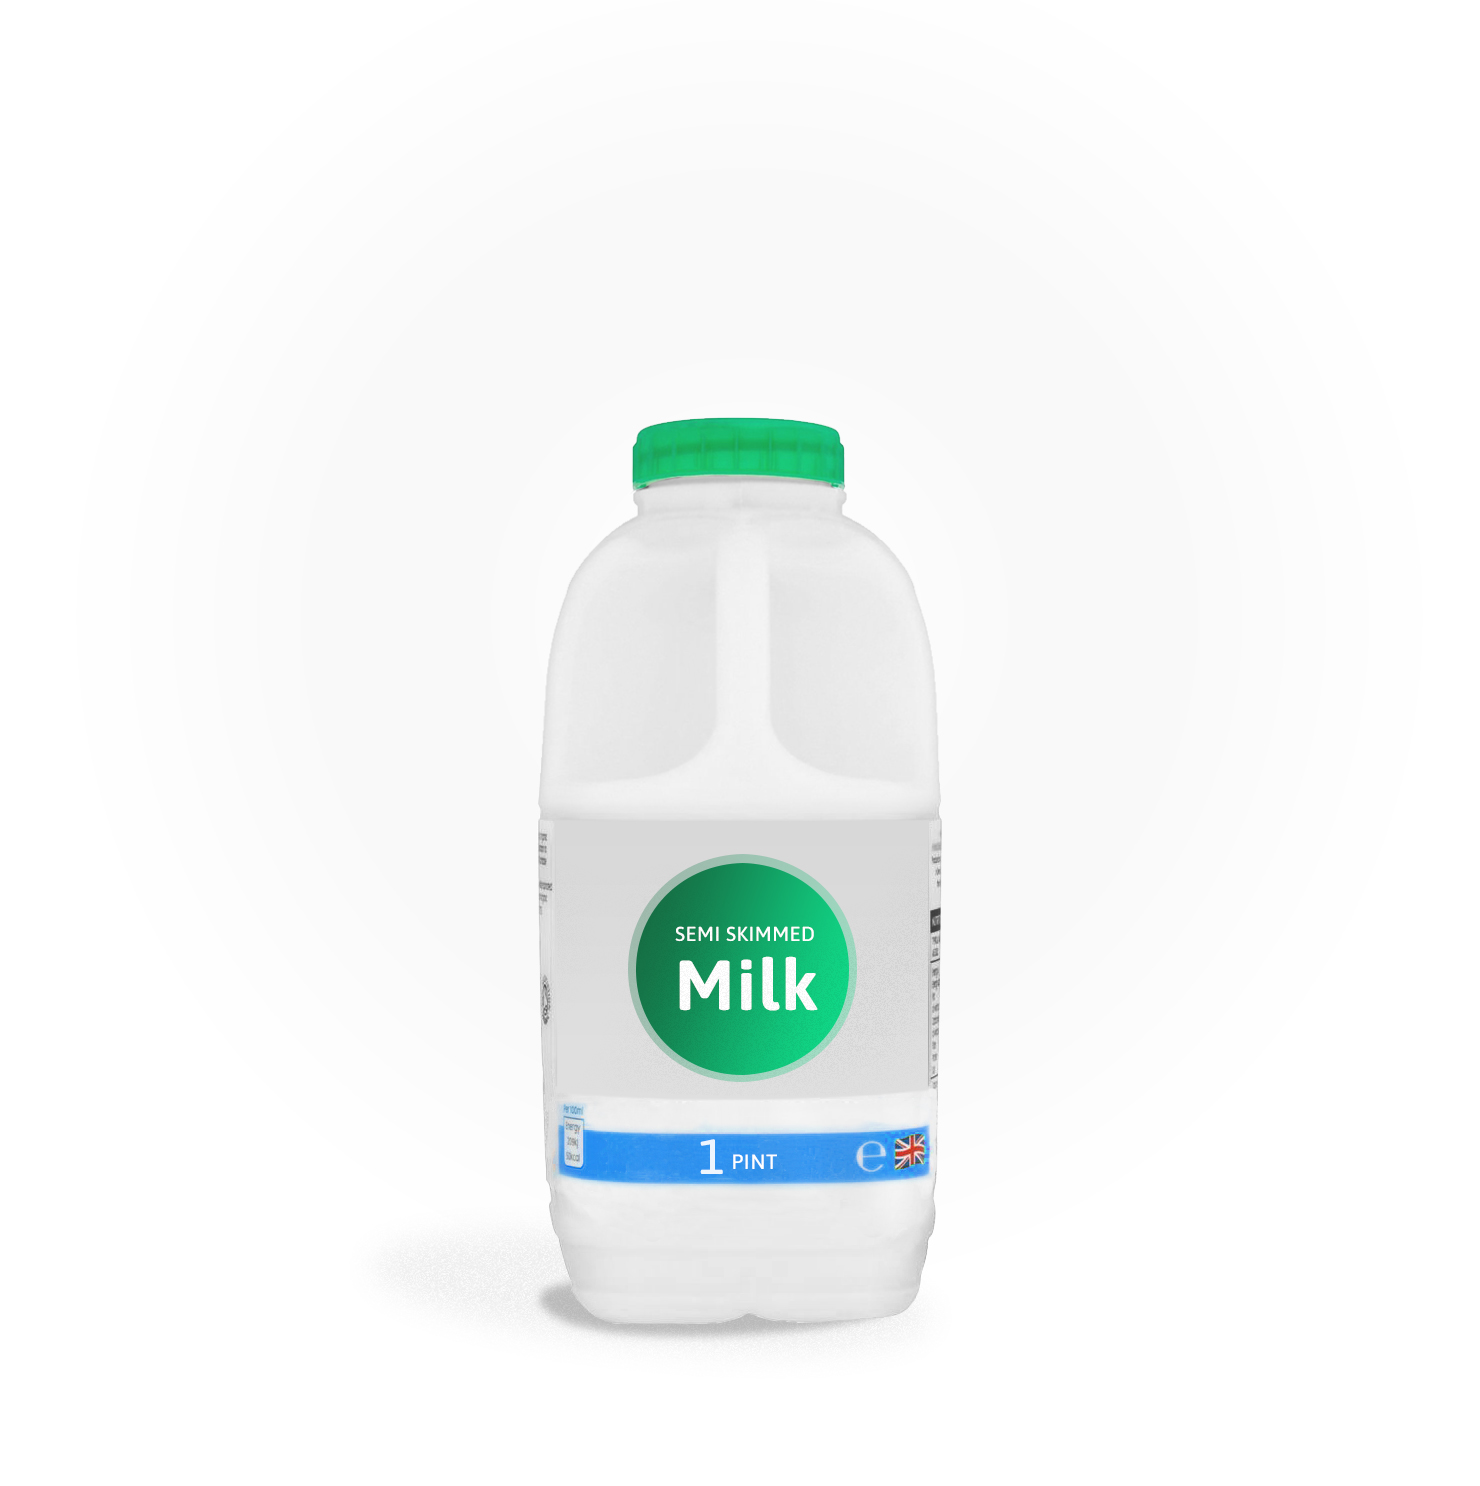 milk delivered to the office semi skimmed